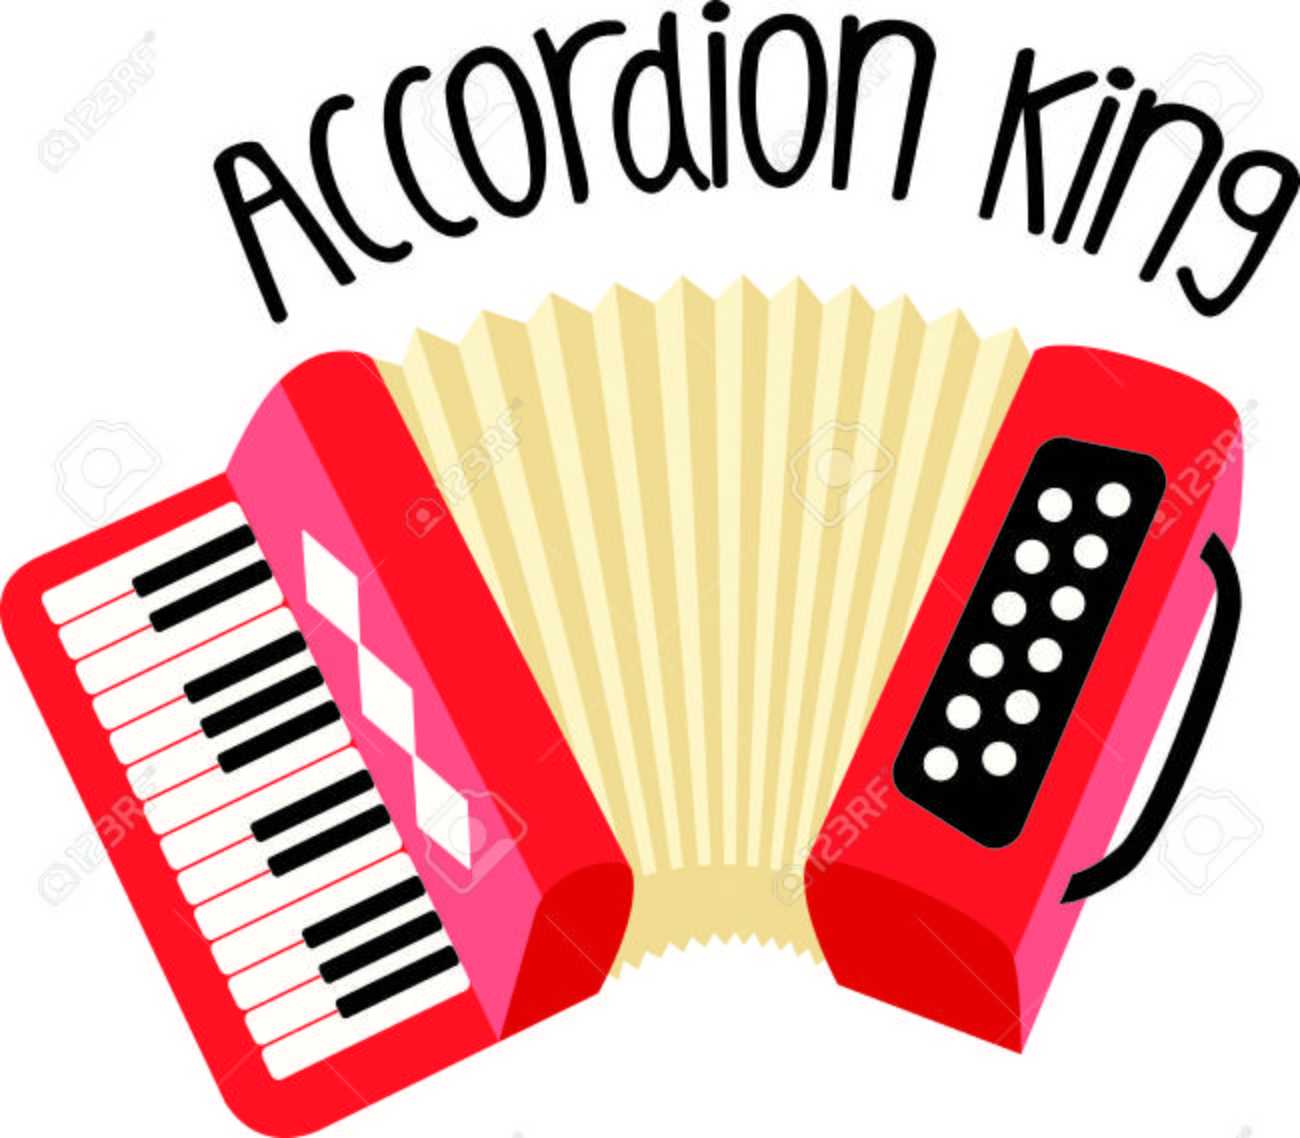 An accordion makes a beautiful sound when played  Add this image